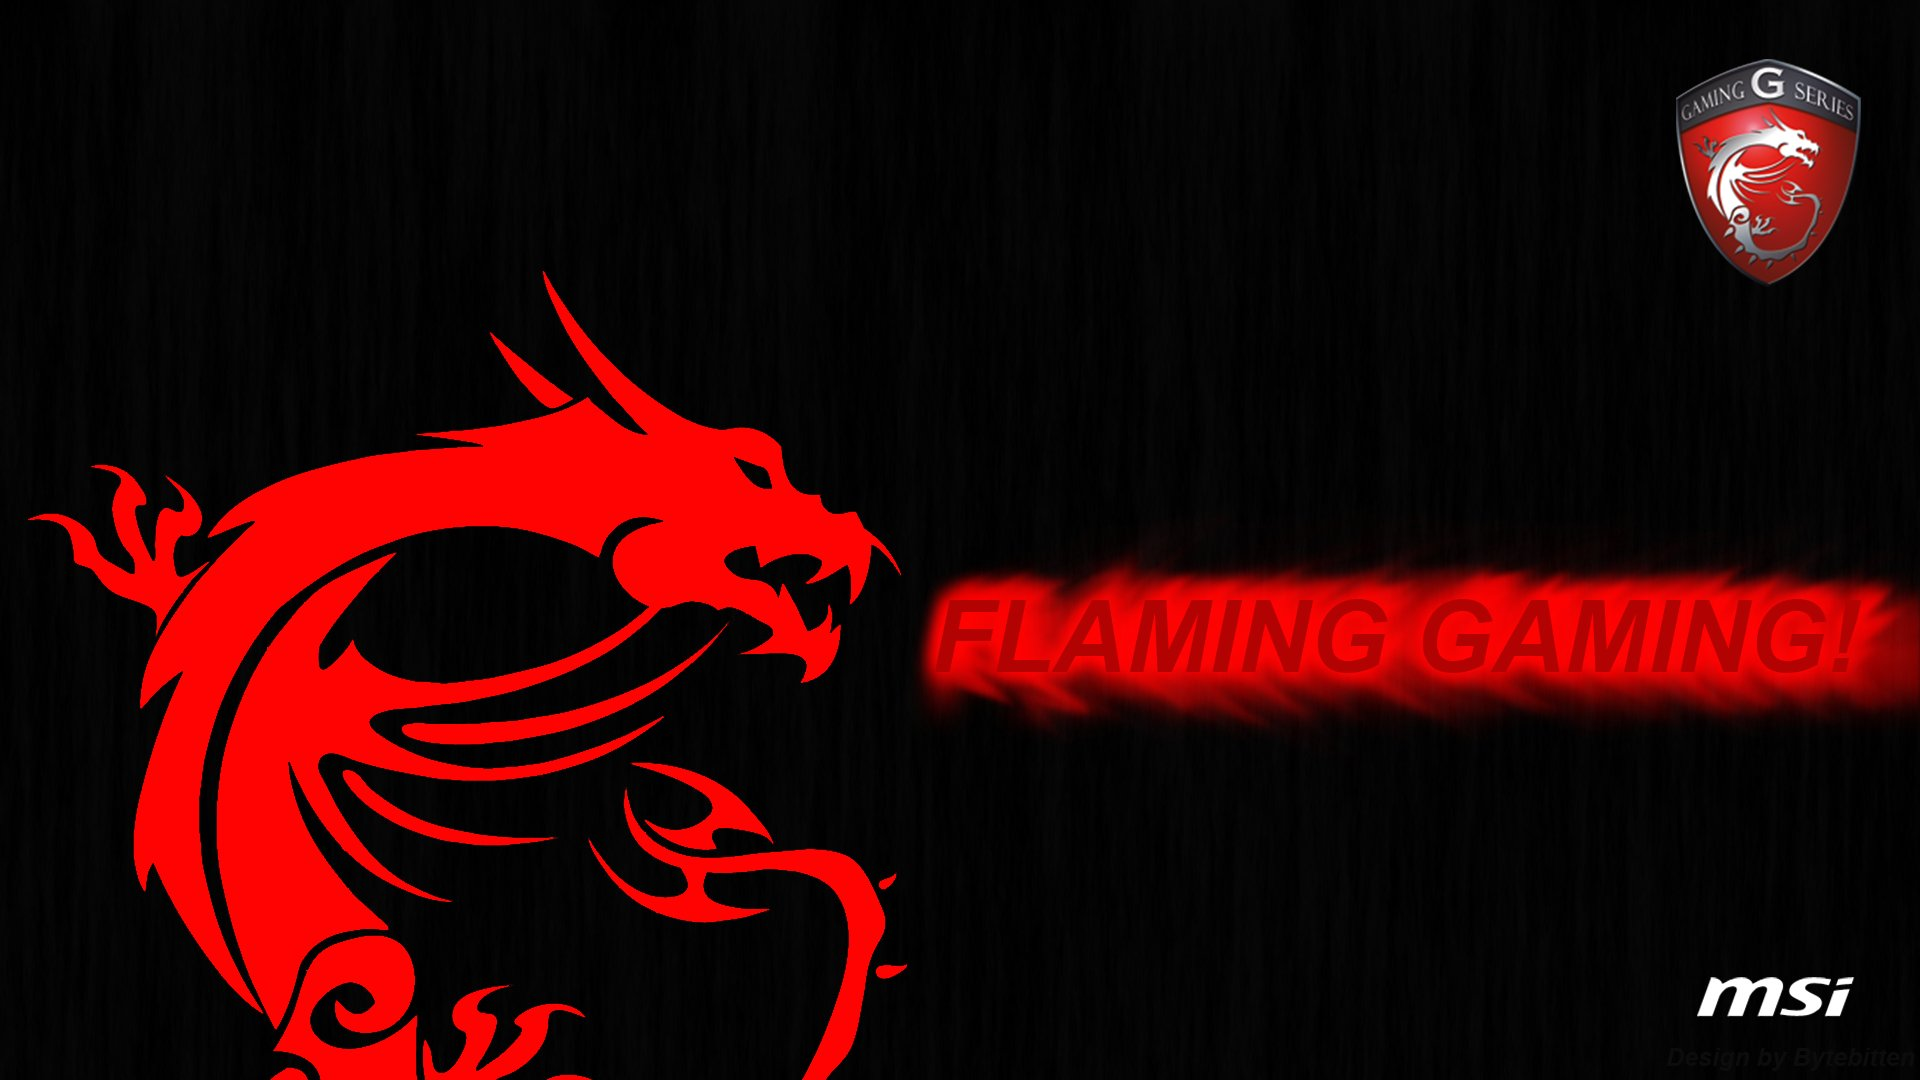 46 msi wallpaper hd 1920x1080 on wallpapersafari - Red gaming wallpaper ...